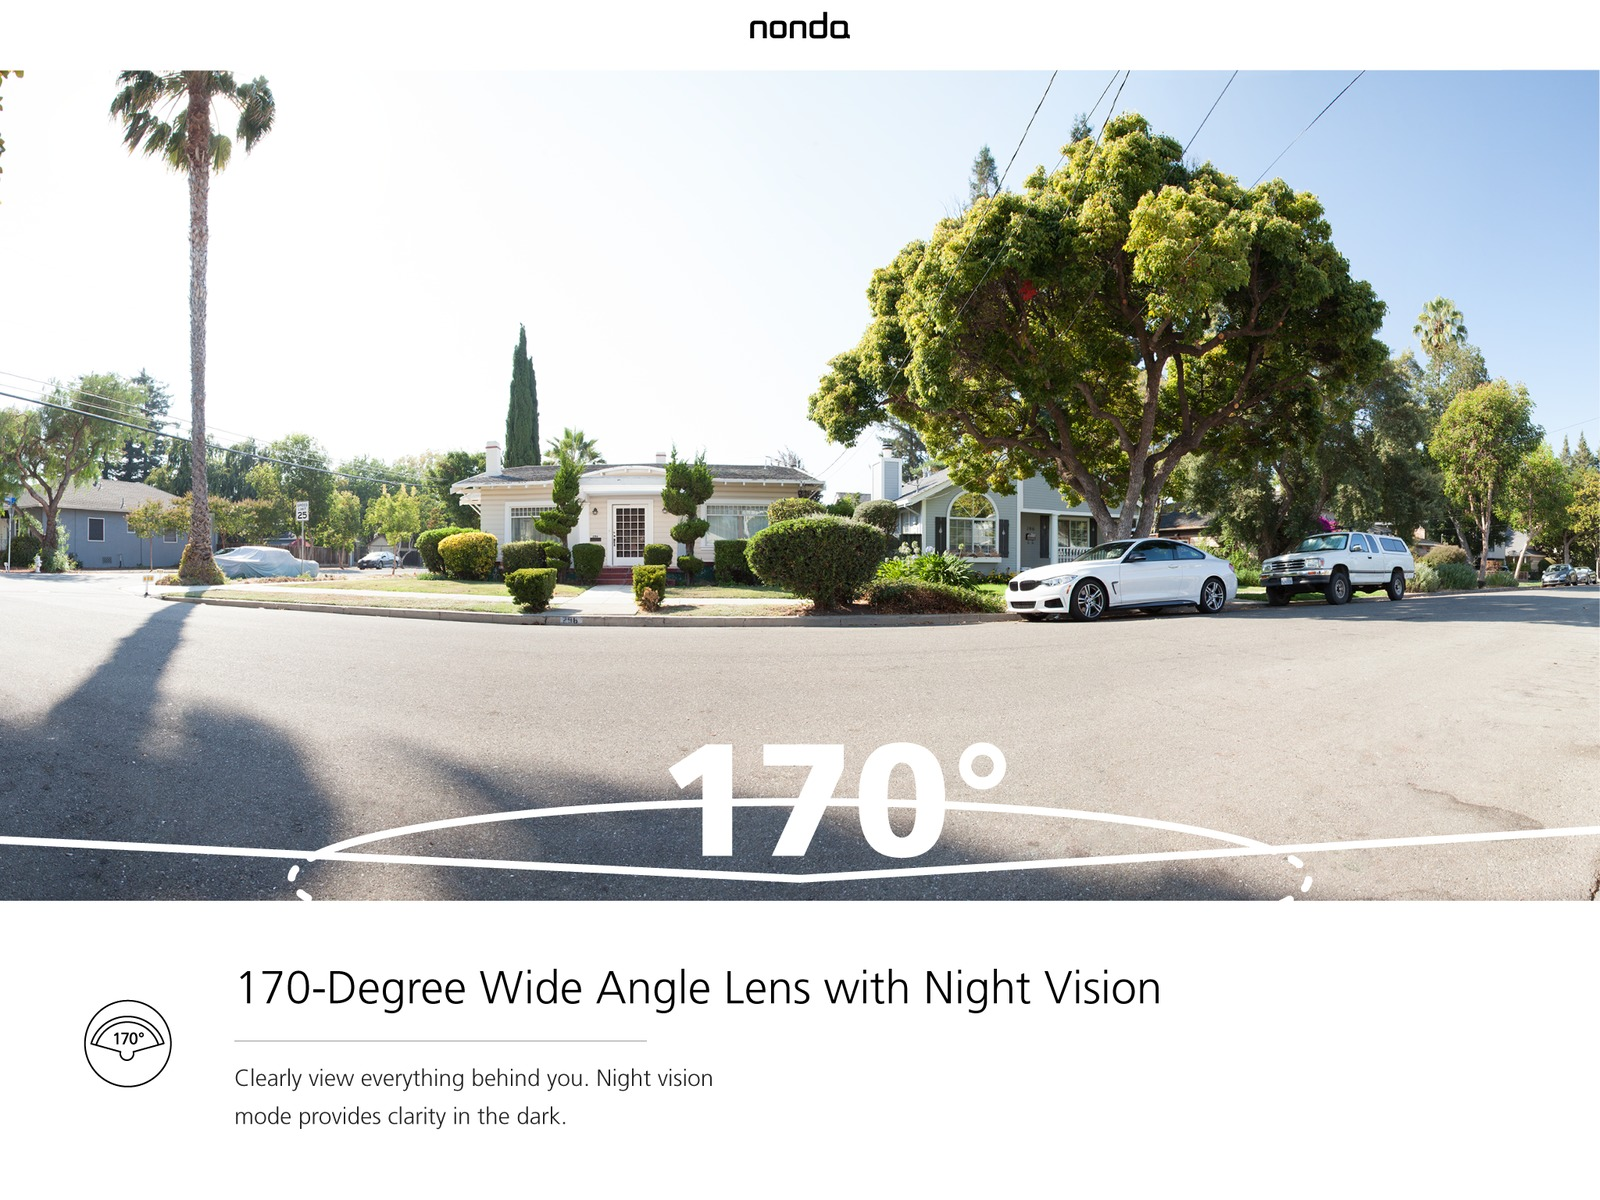 Nonda Zus Smart Backup Camera Real Wireless Rear View With Wiring 170 Degrees Wide Angle